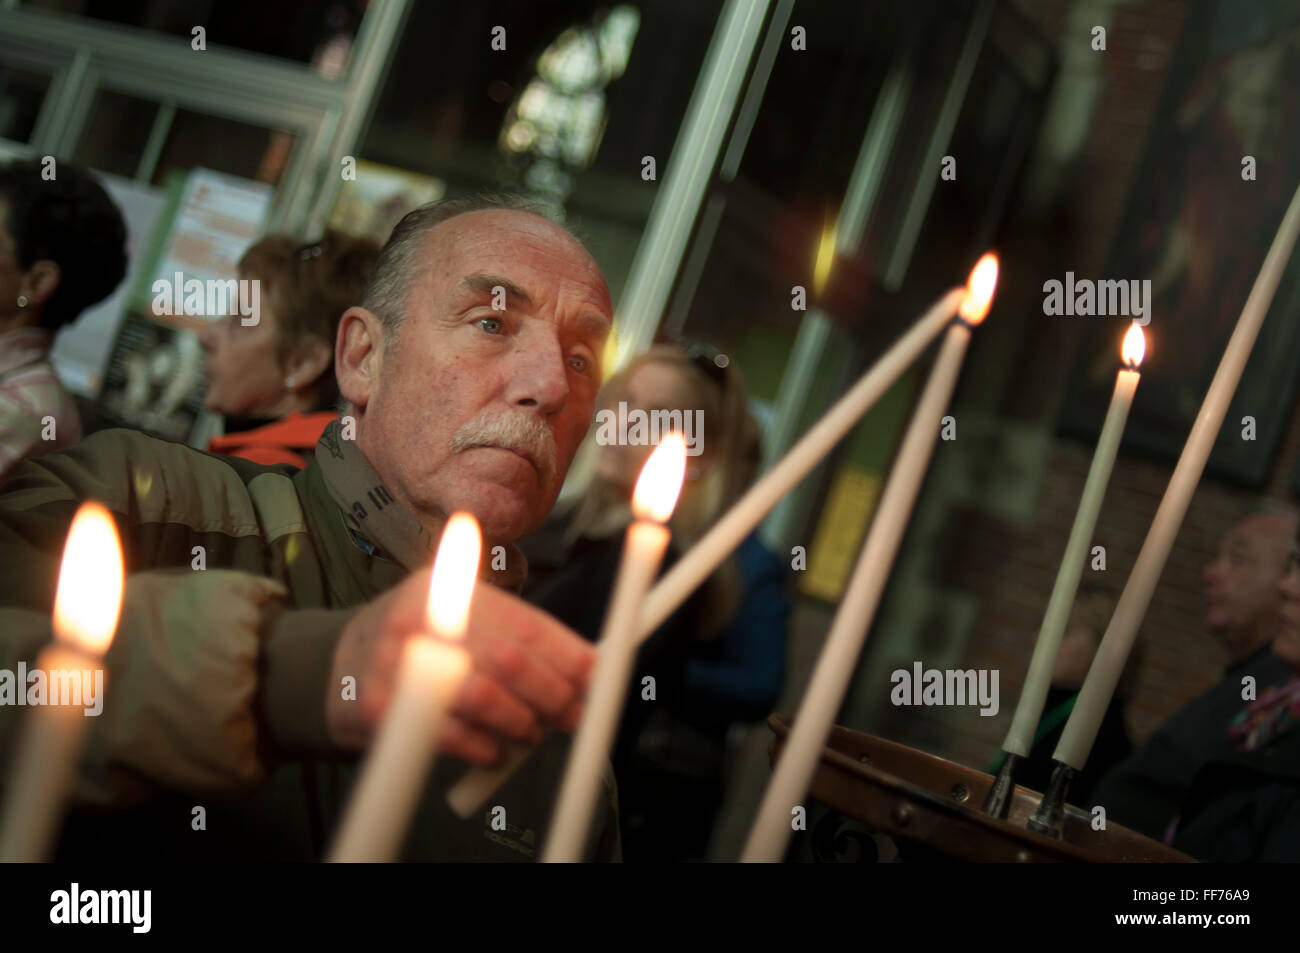 Religious man lighting a candle - Stock Image